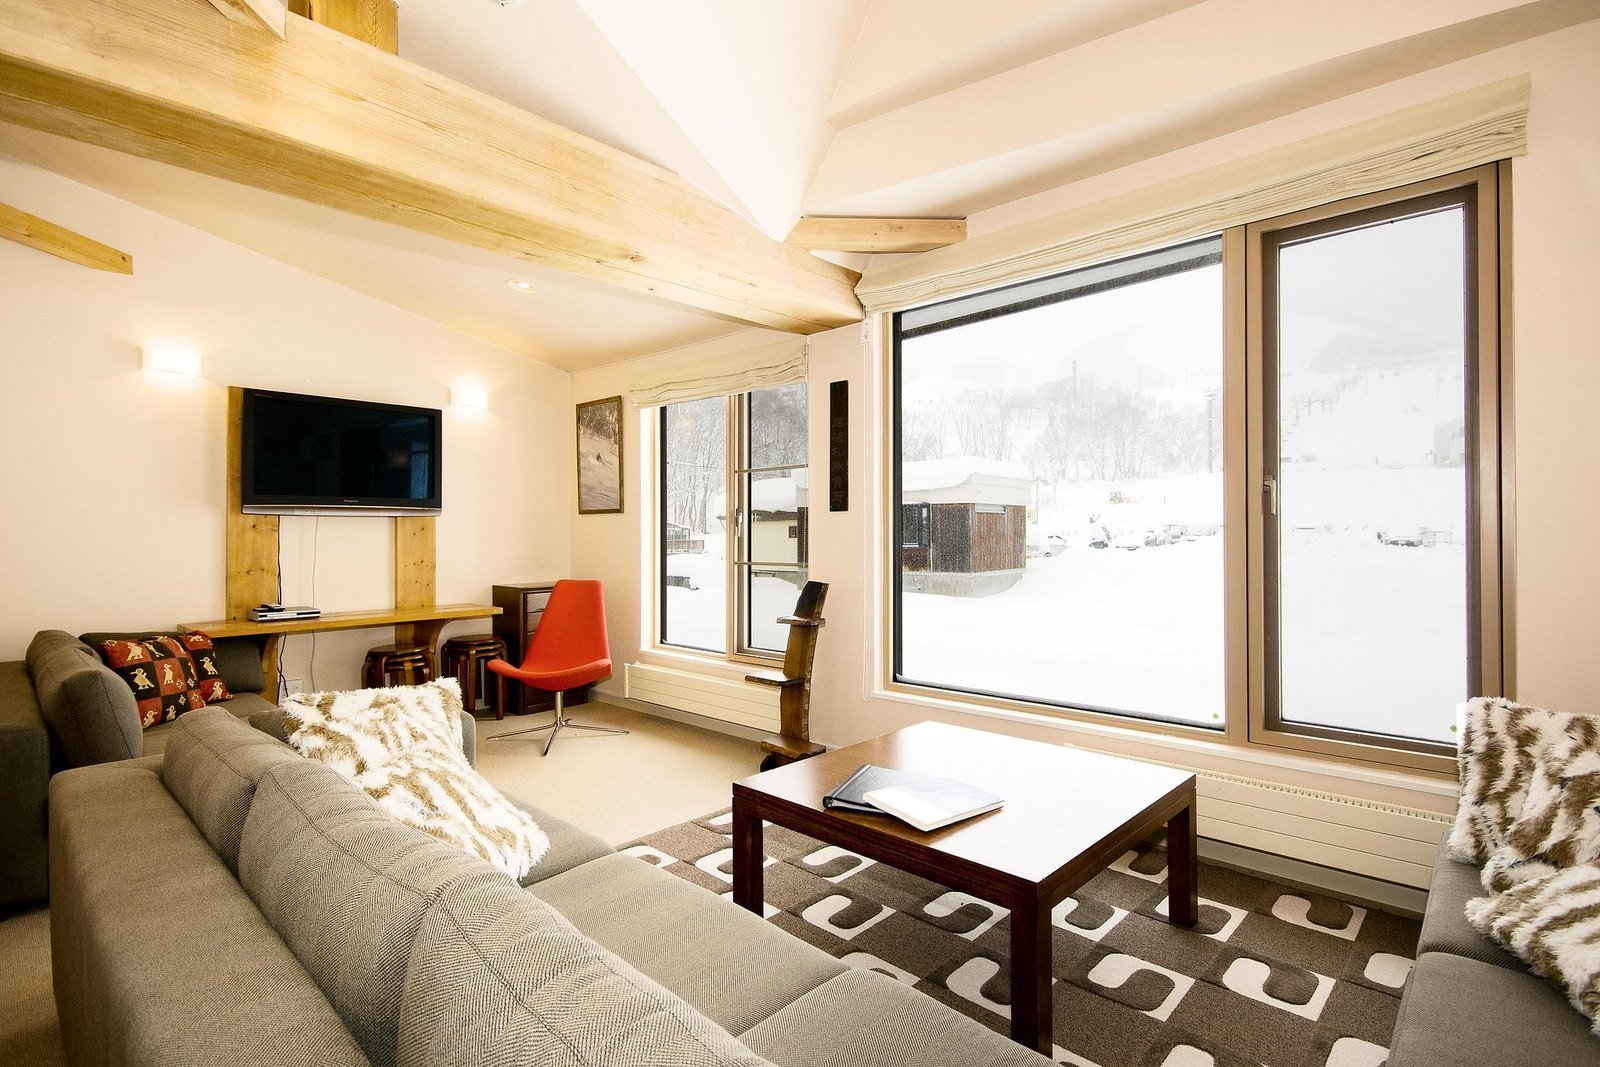 A 3 bedroom townhouse in Gondola Chalets, Niseko.